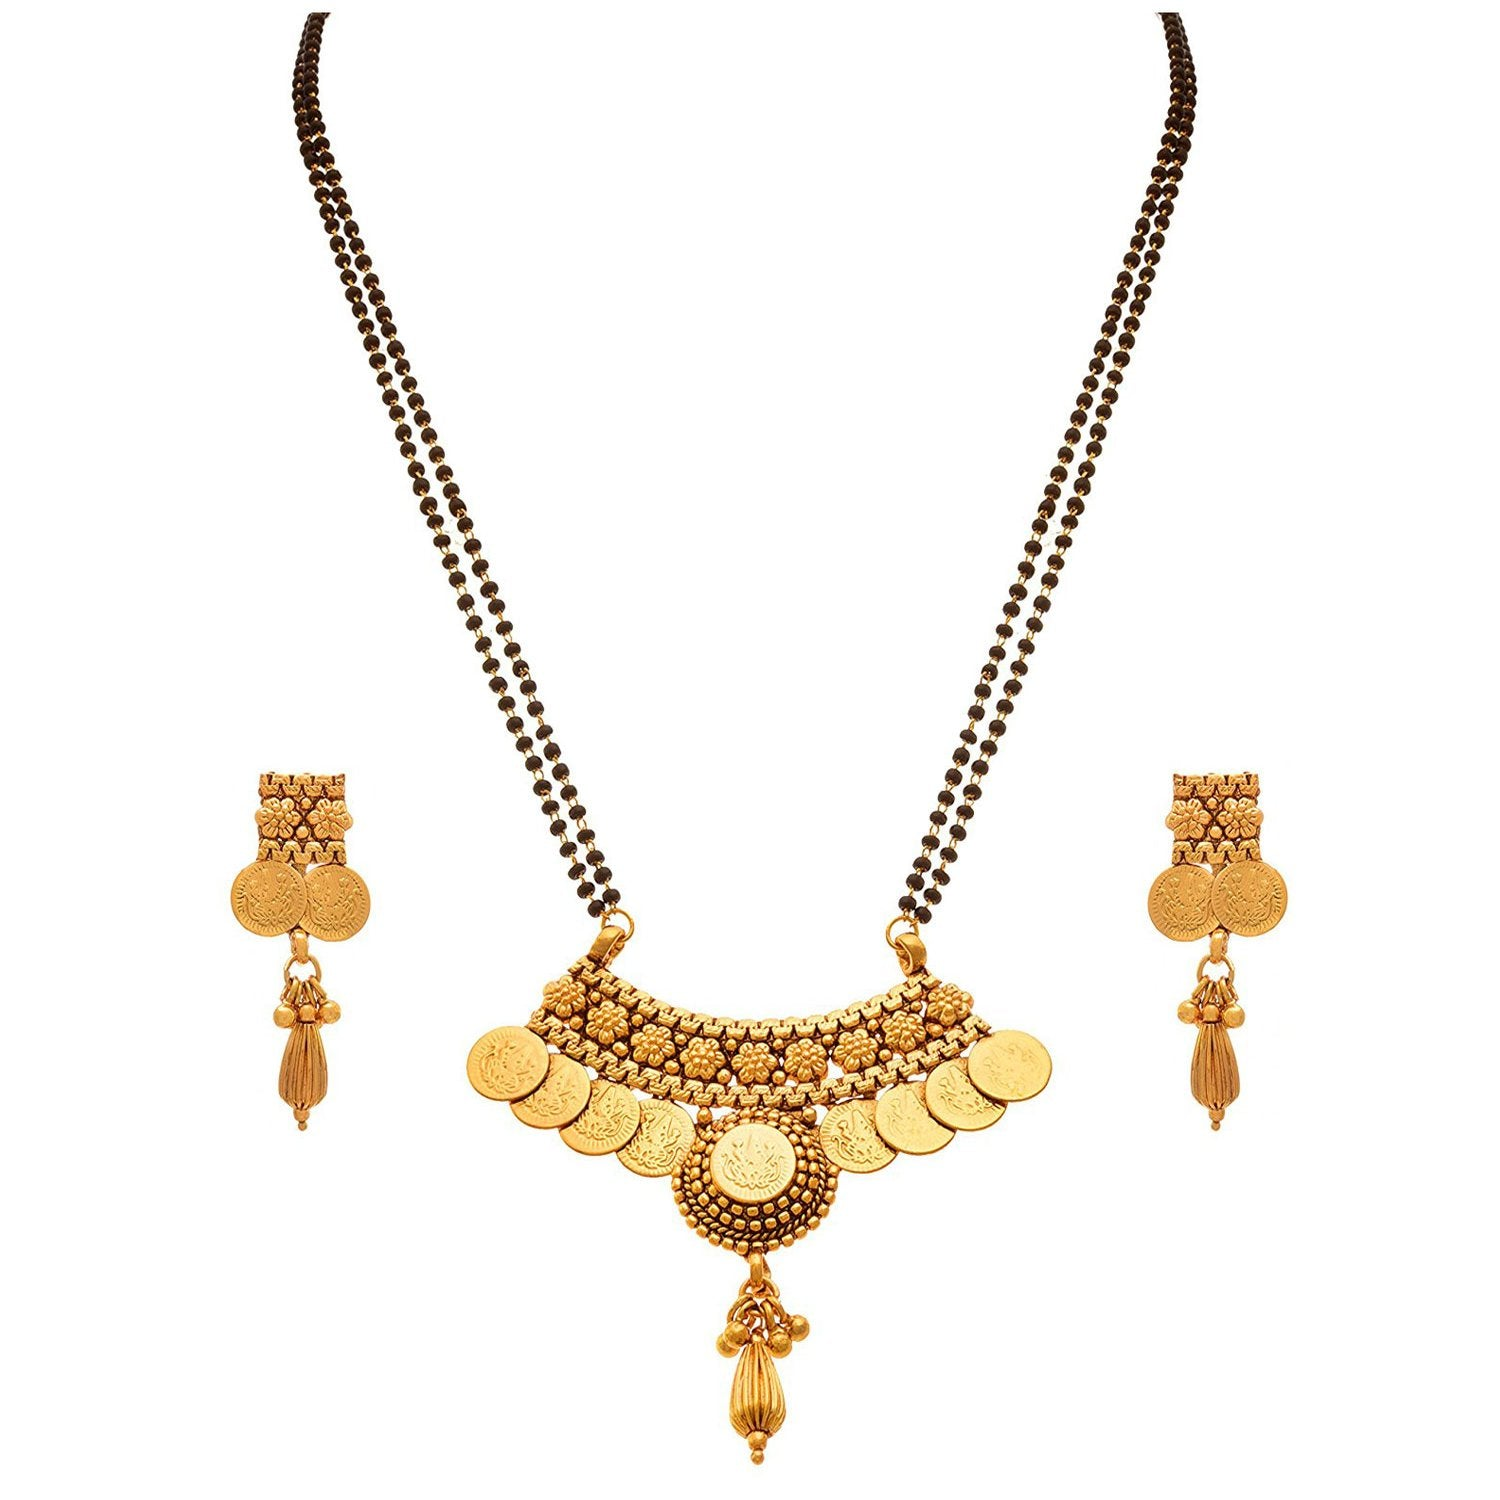 JFL - Traditional Ethnic Temple Goddess Laxmi One Gram Gold Plated Coin Mangalsutra with Black Beaded Double Chain and Earrings for Women